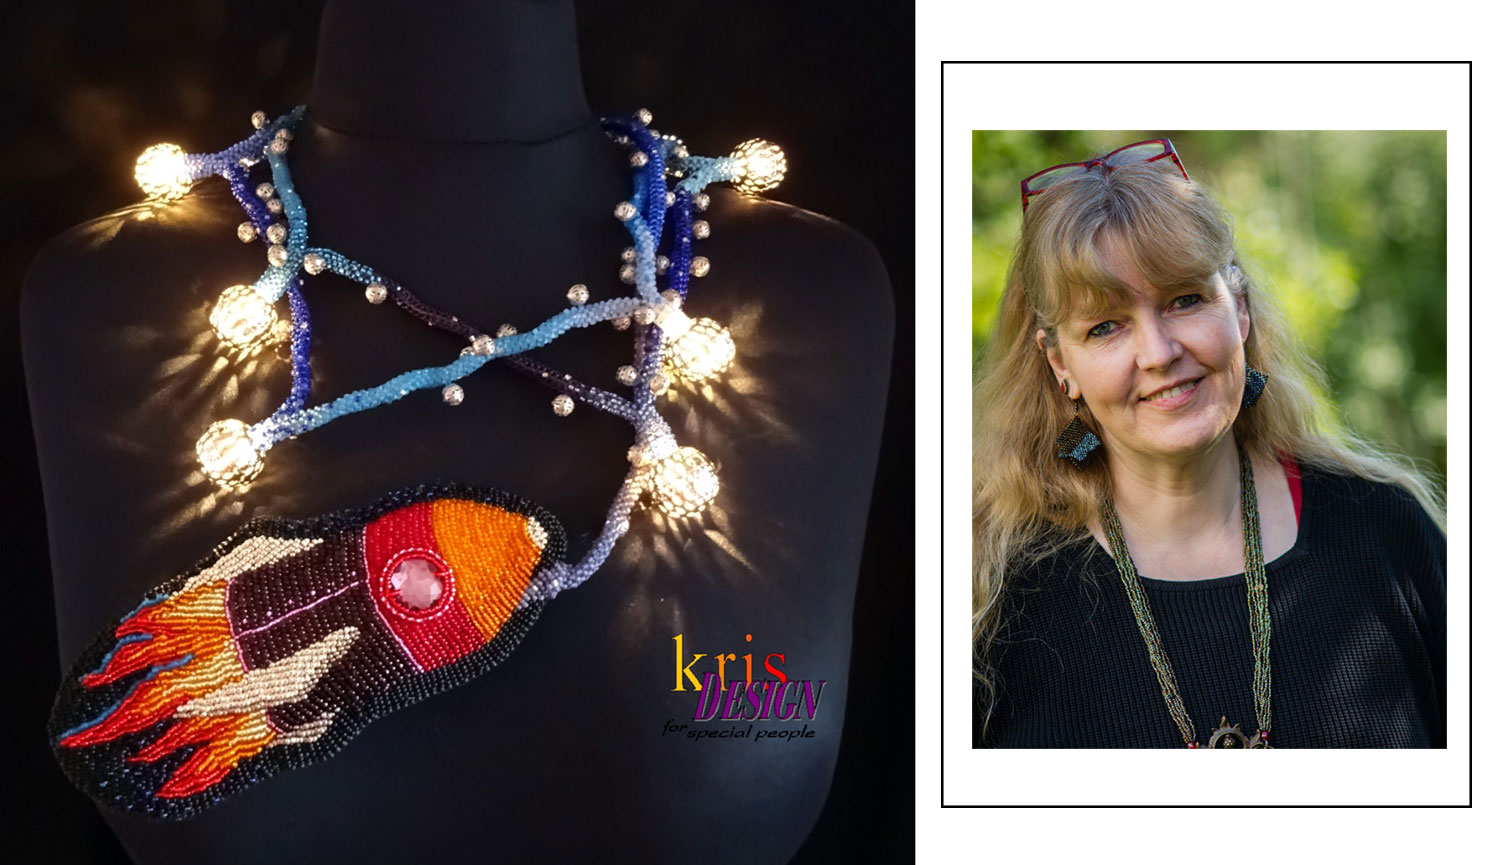 beaded necklace by Kris Design Germany based jewelry designer